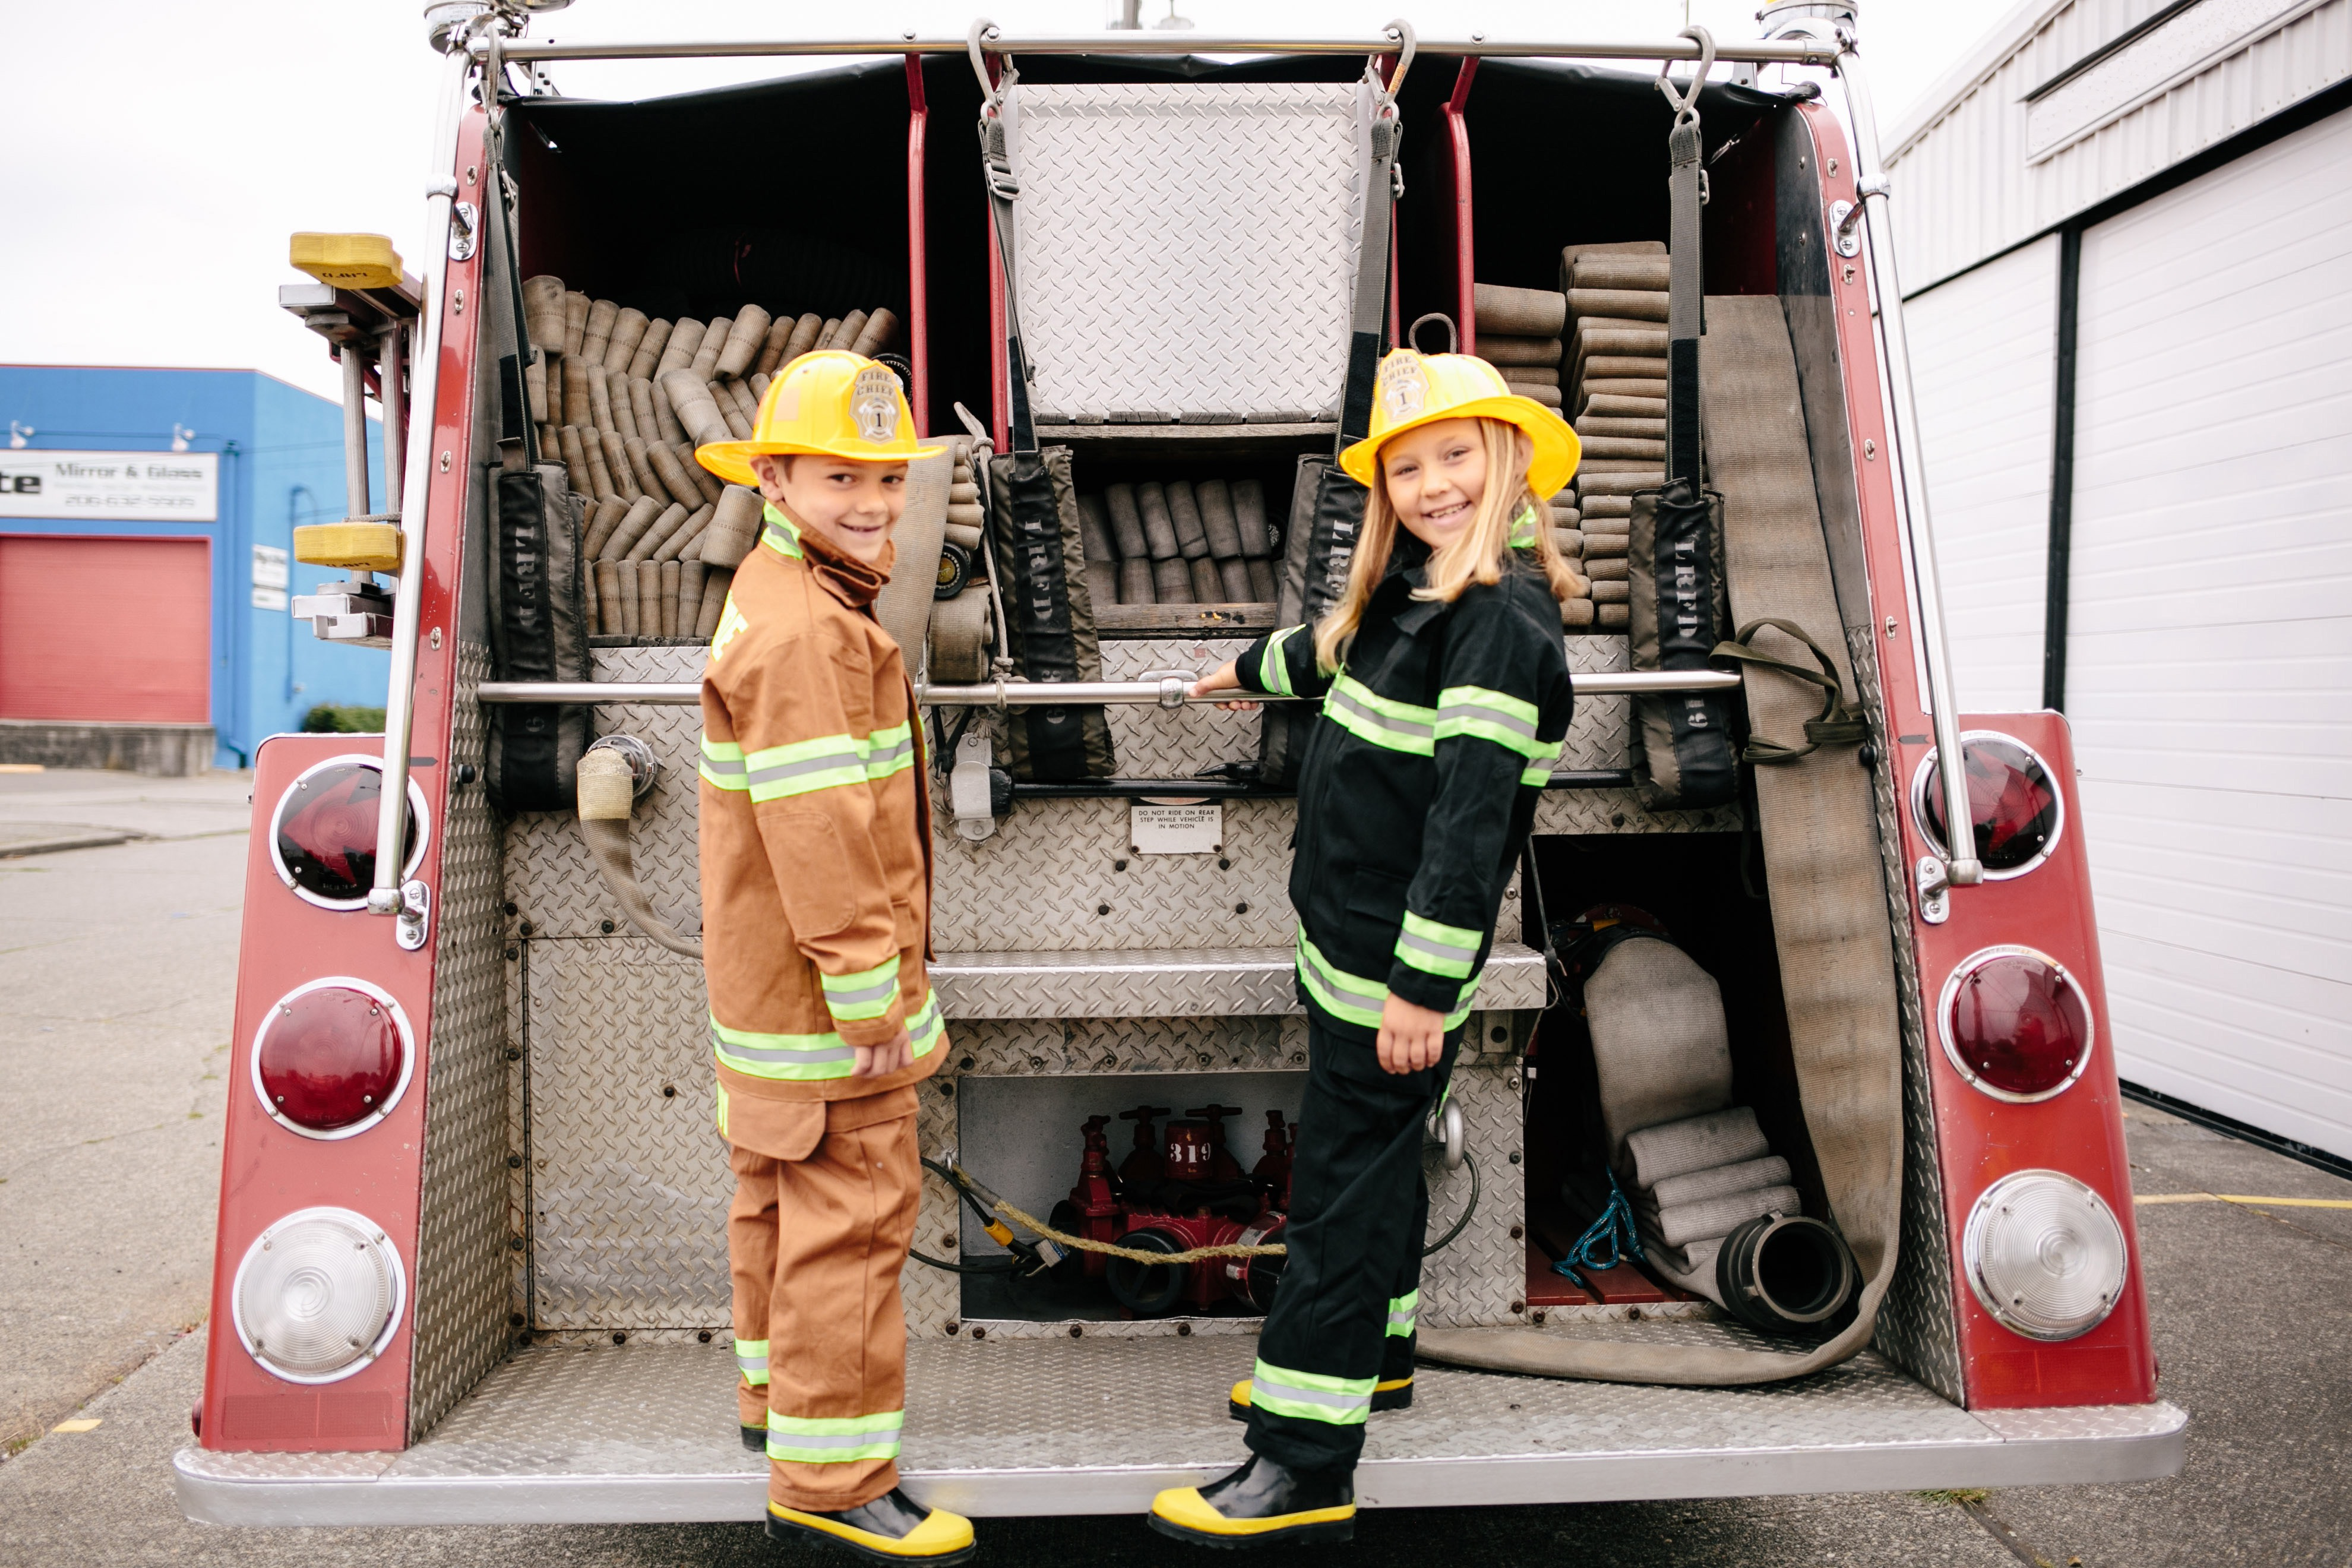 ... costumes you would buy at a party store) Authentic Looking Keepsake you will cherish forever. For our local Eastside Fire Little Heroes in Issaquah ...  sc 1 st  Little Hero Uniforms & Official Little Hero | Little Hero Uniforms